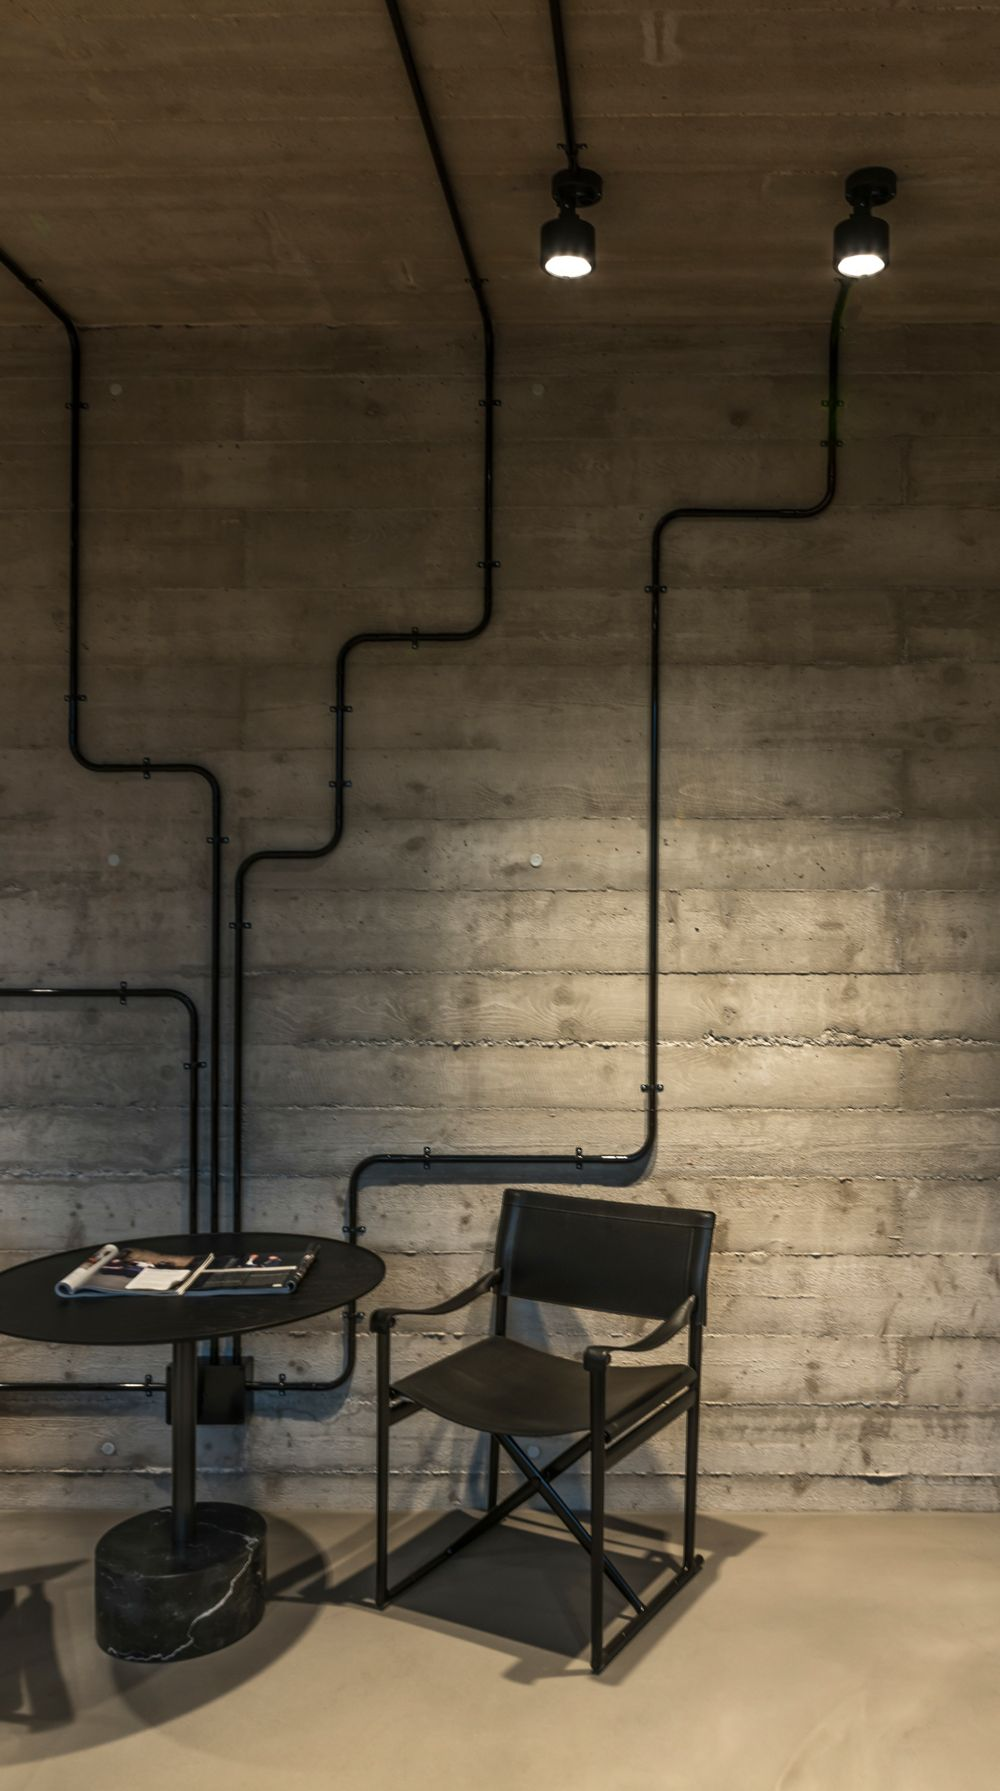 medium resolution of accent erco lighting and surface mounted wiring as a graphic element interior wall surface wiring